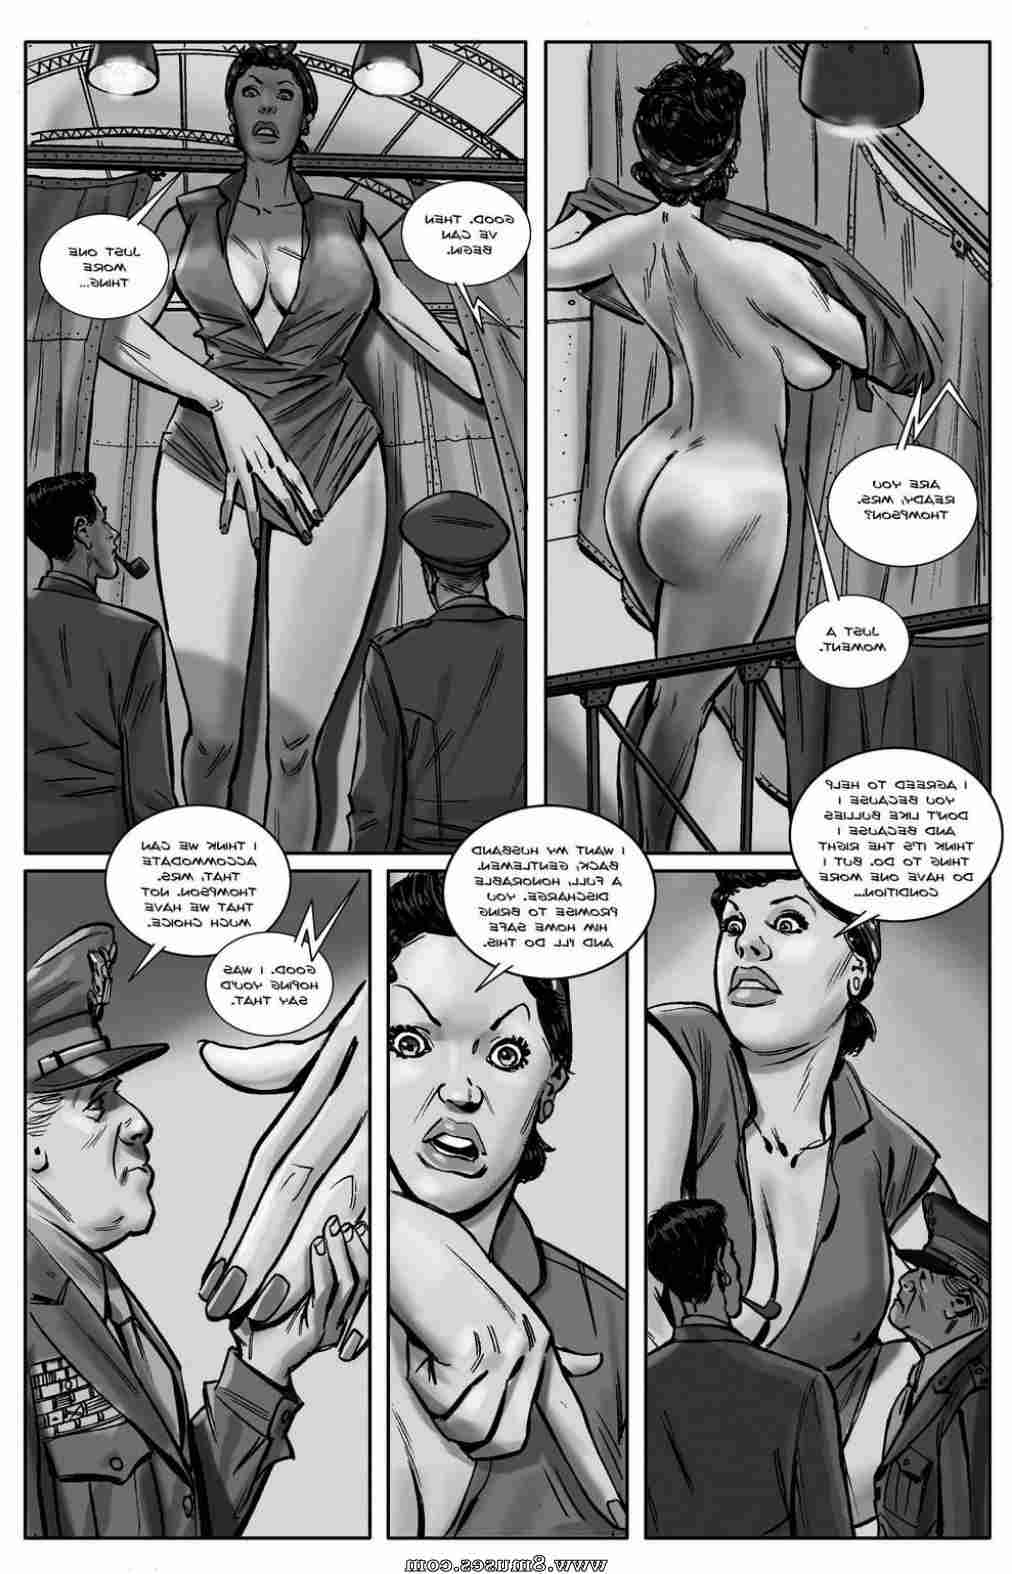 Giantess-Club-Comics/Project-Overman Project_Overman__8muses_-_Sex_and_Porn_Comics_19.jpg